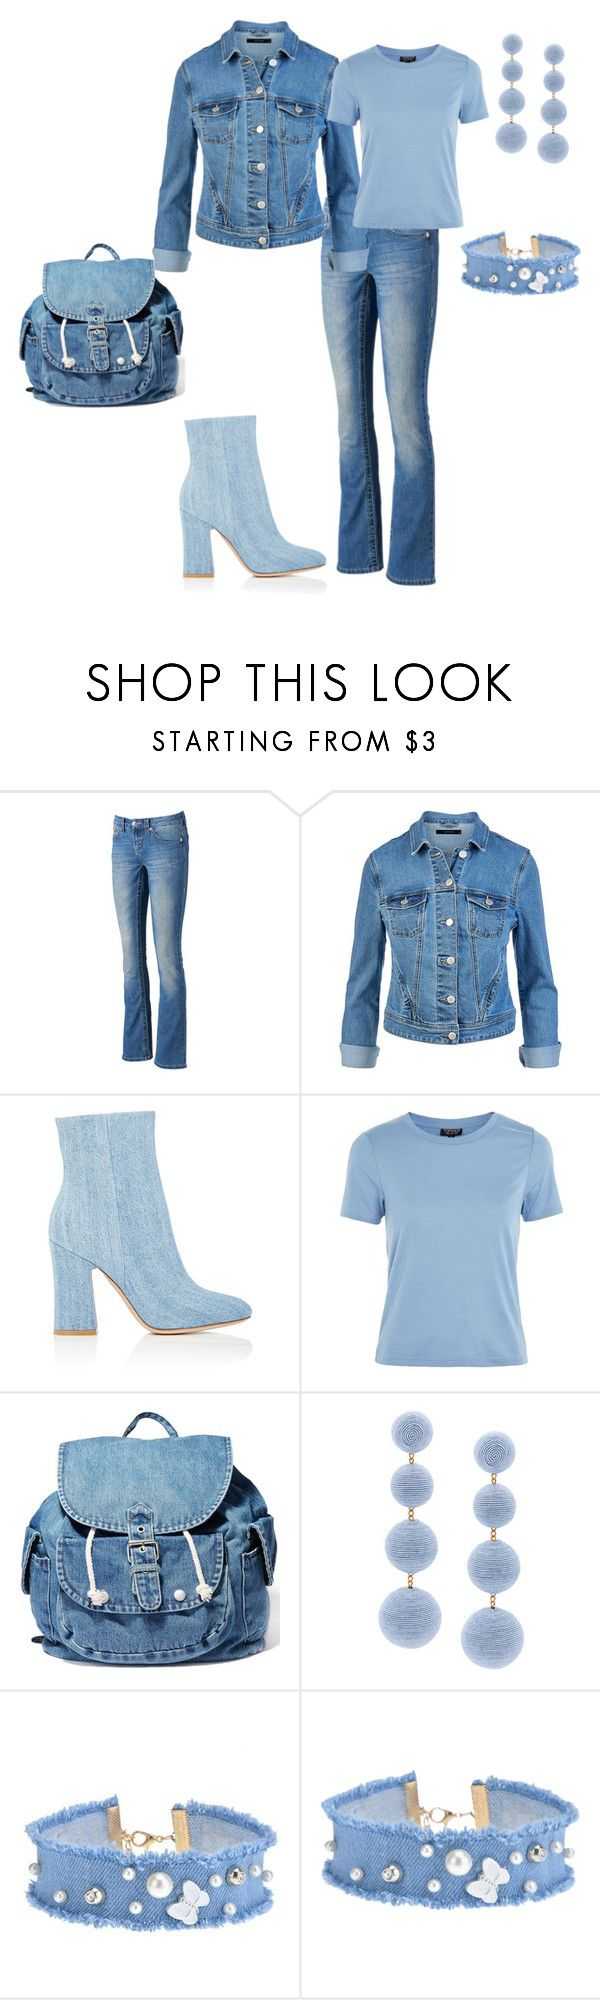 """""""Untitled #173"""" by ognevaira ❤ liked on Polyvore featuring Seven7 Jeans, Gianvito Rossi, Topshop, Dance & Marvel and Rebecca de Ravenel"""